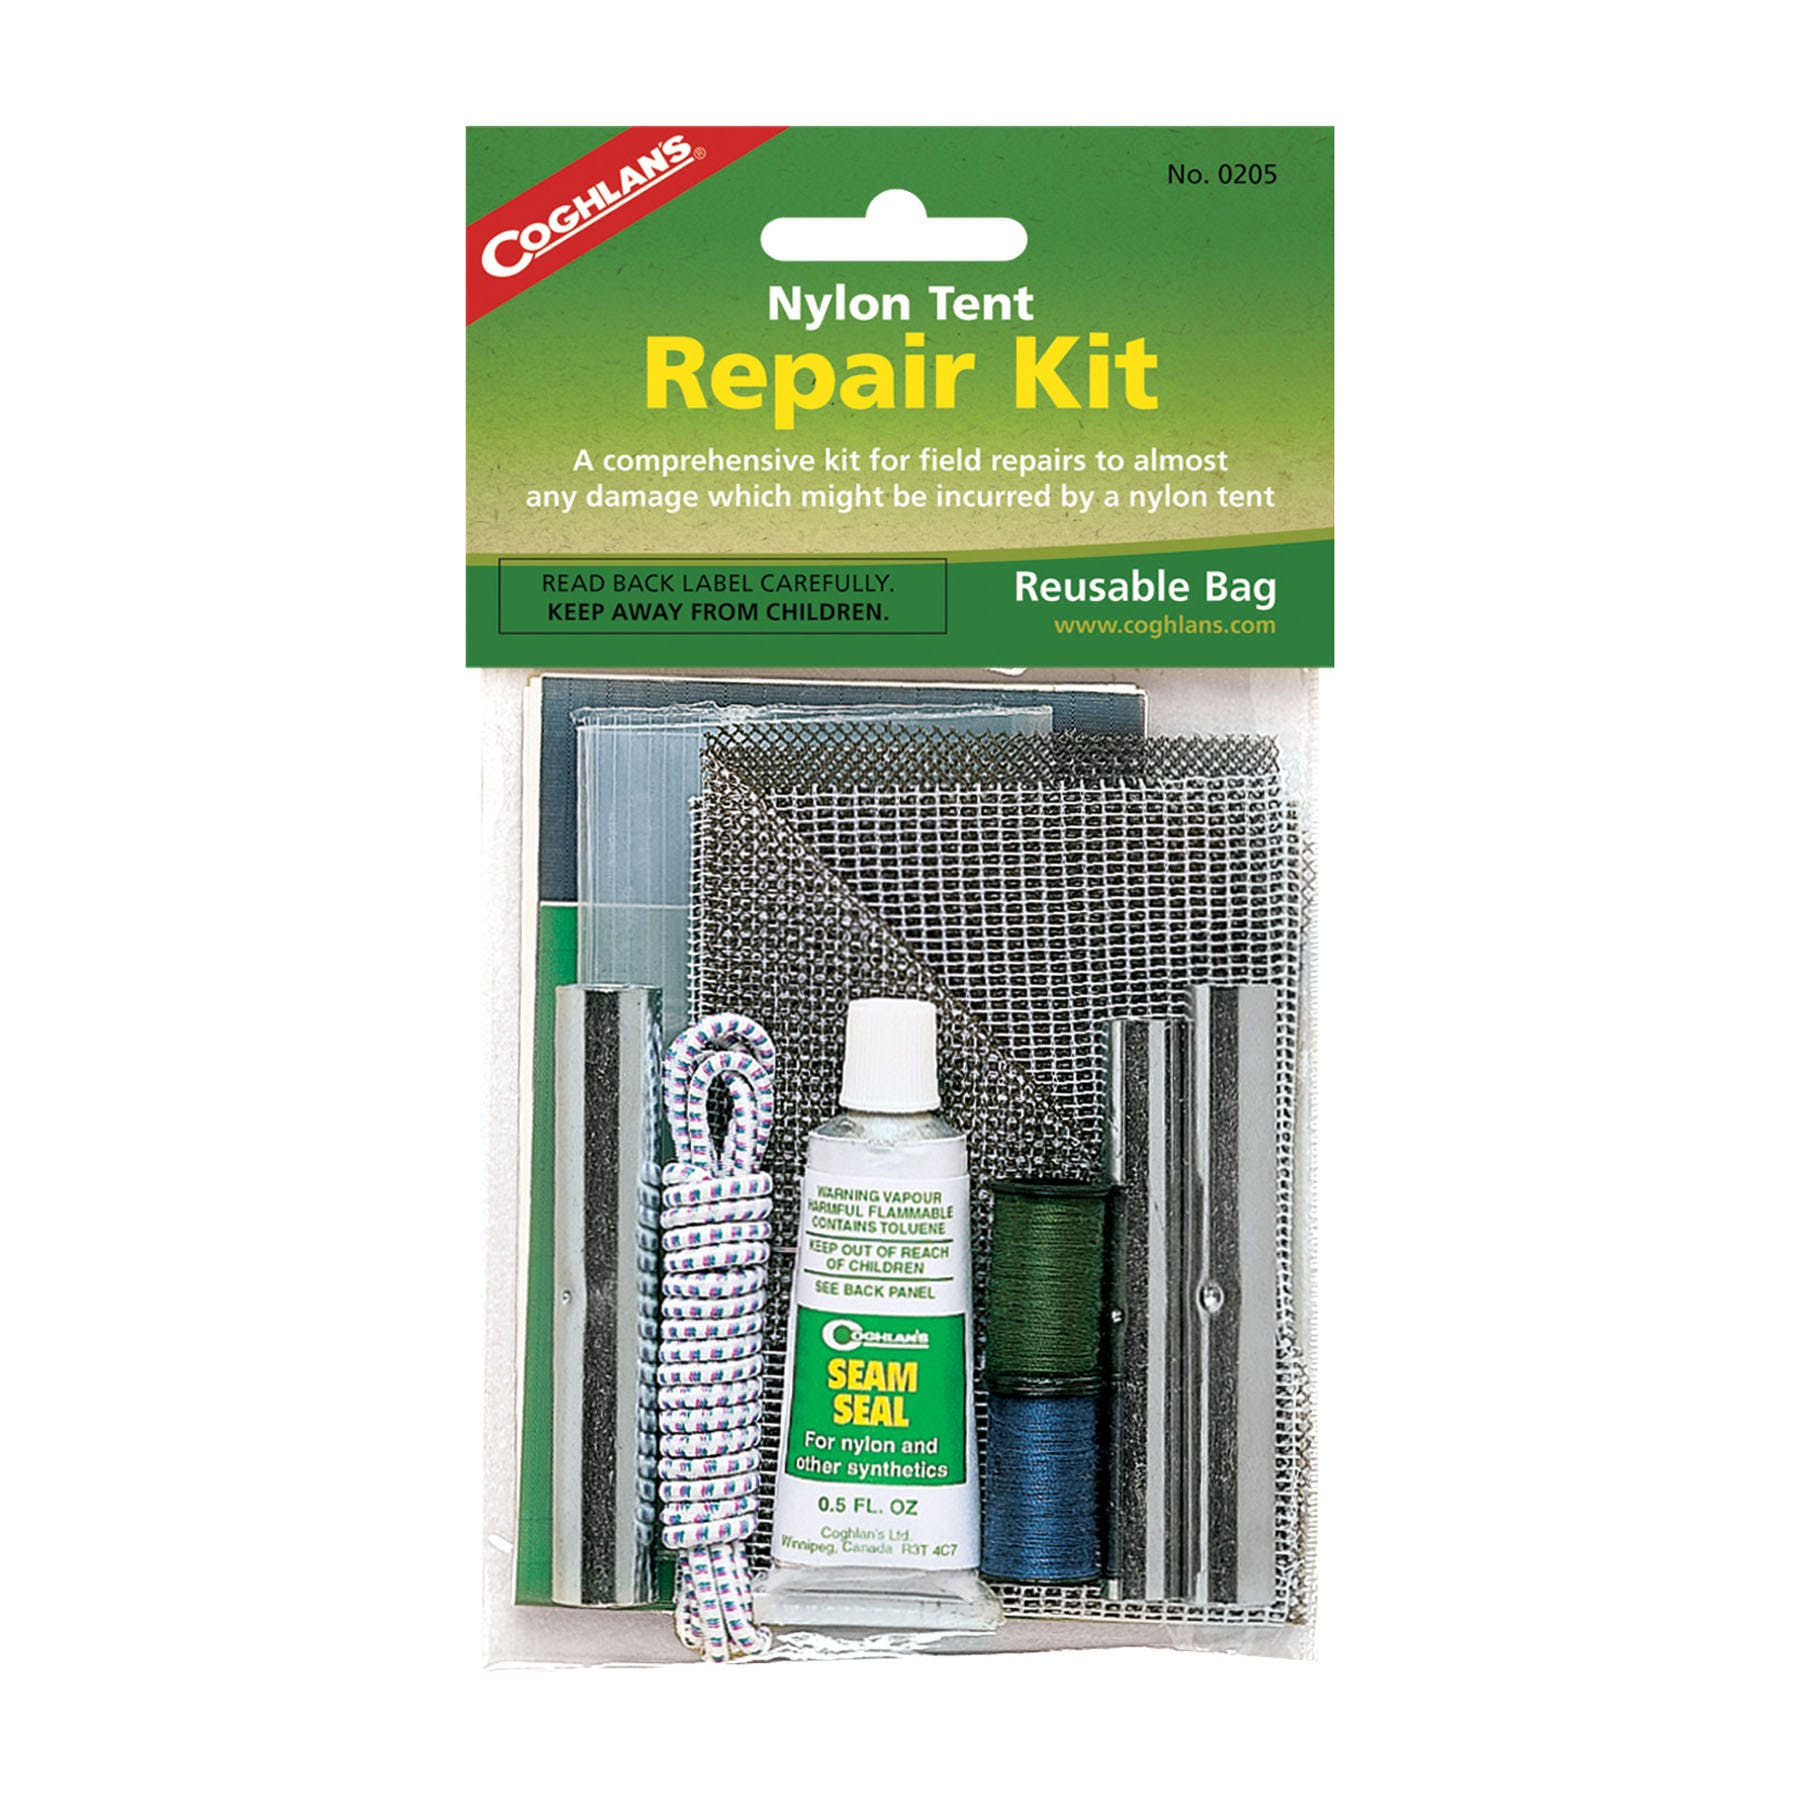 Coghlanu0027s Nylon Tent Repair Kit  sc 1 st  Outdoors Geek & Coghlanu0027s Nylon Tent Repair Kit - Outdoors Geek